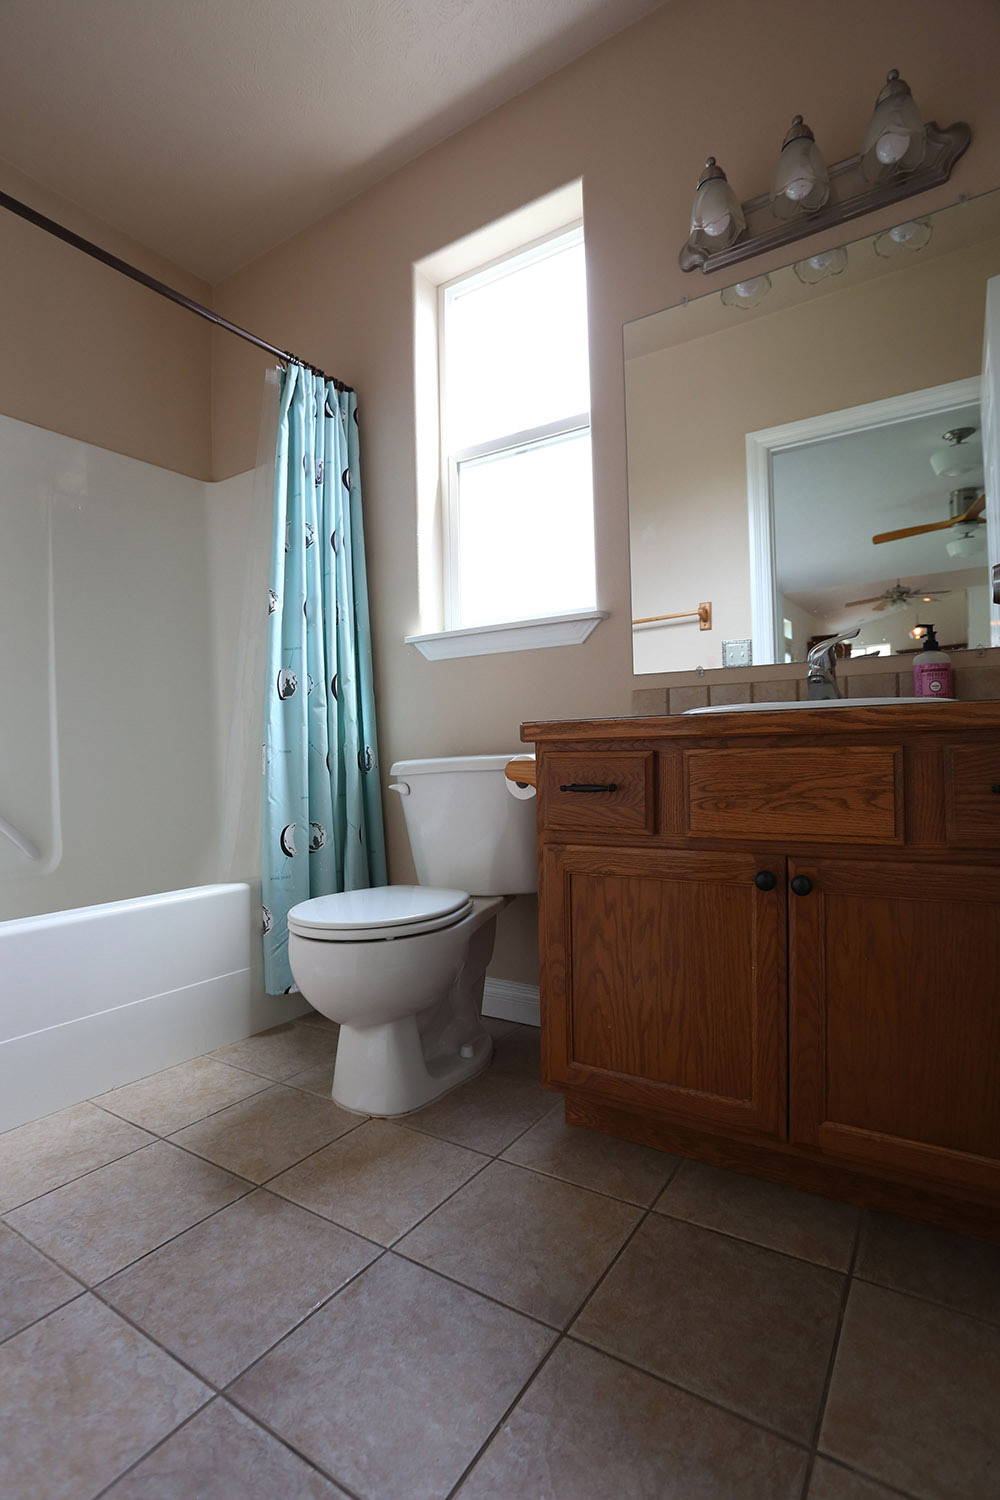 The bathroom before the renovation.